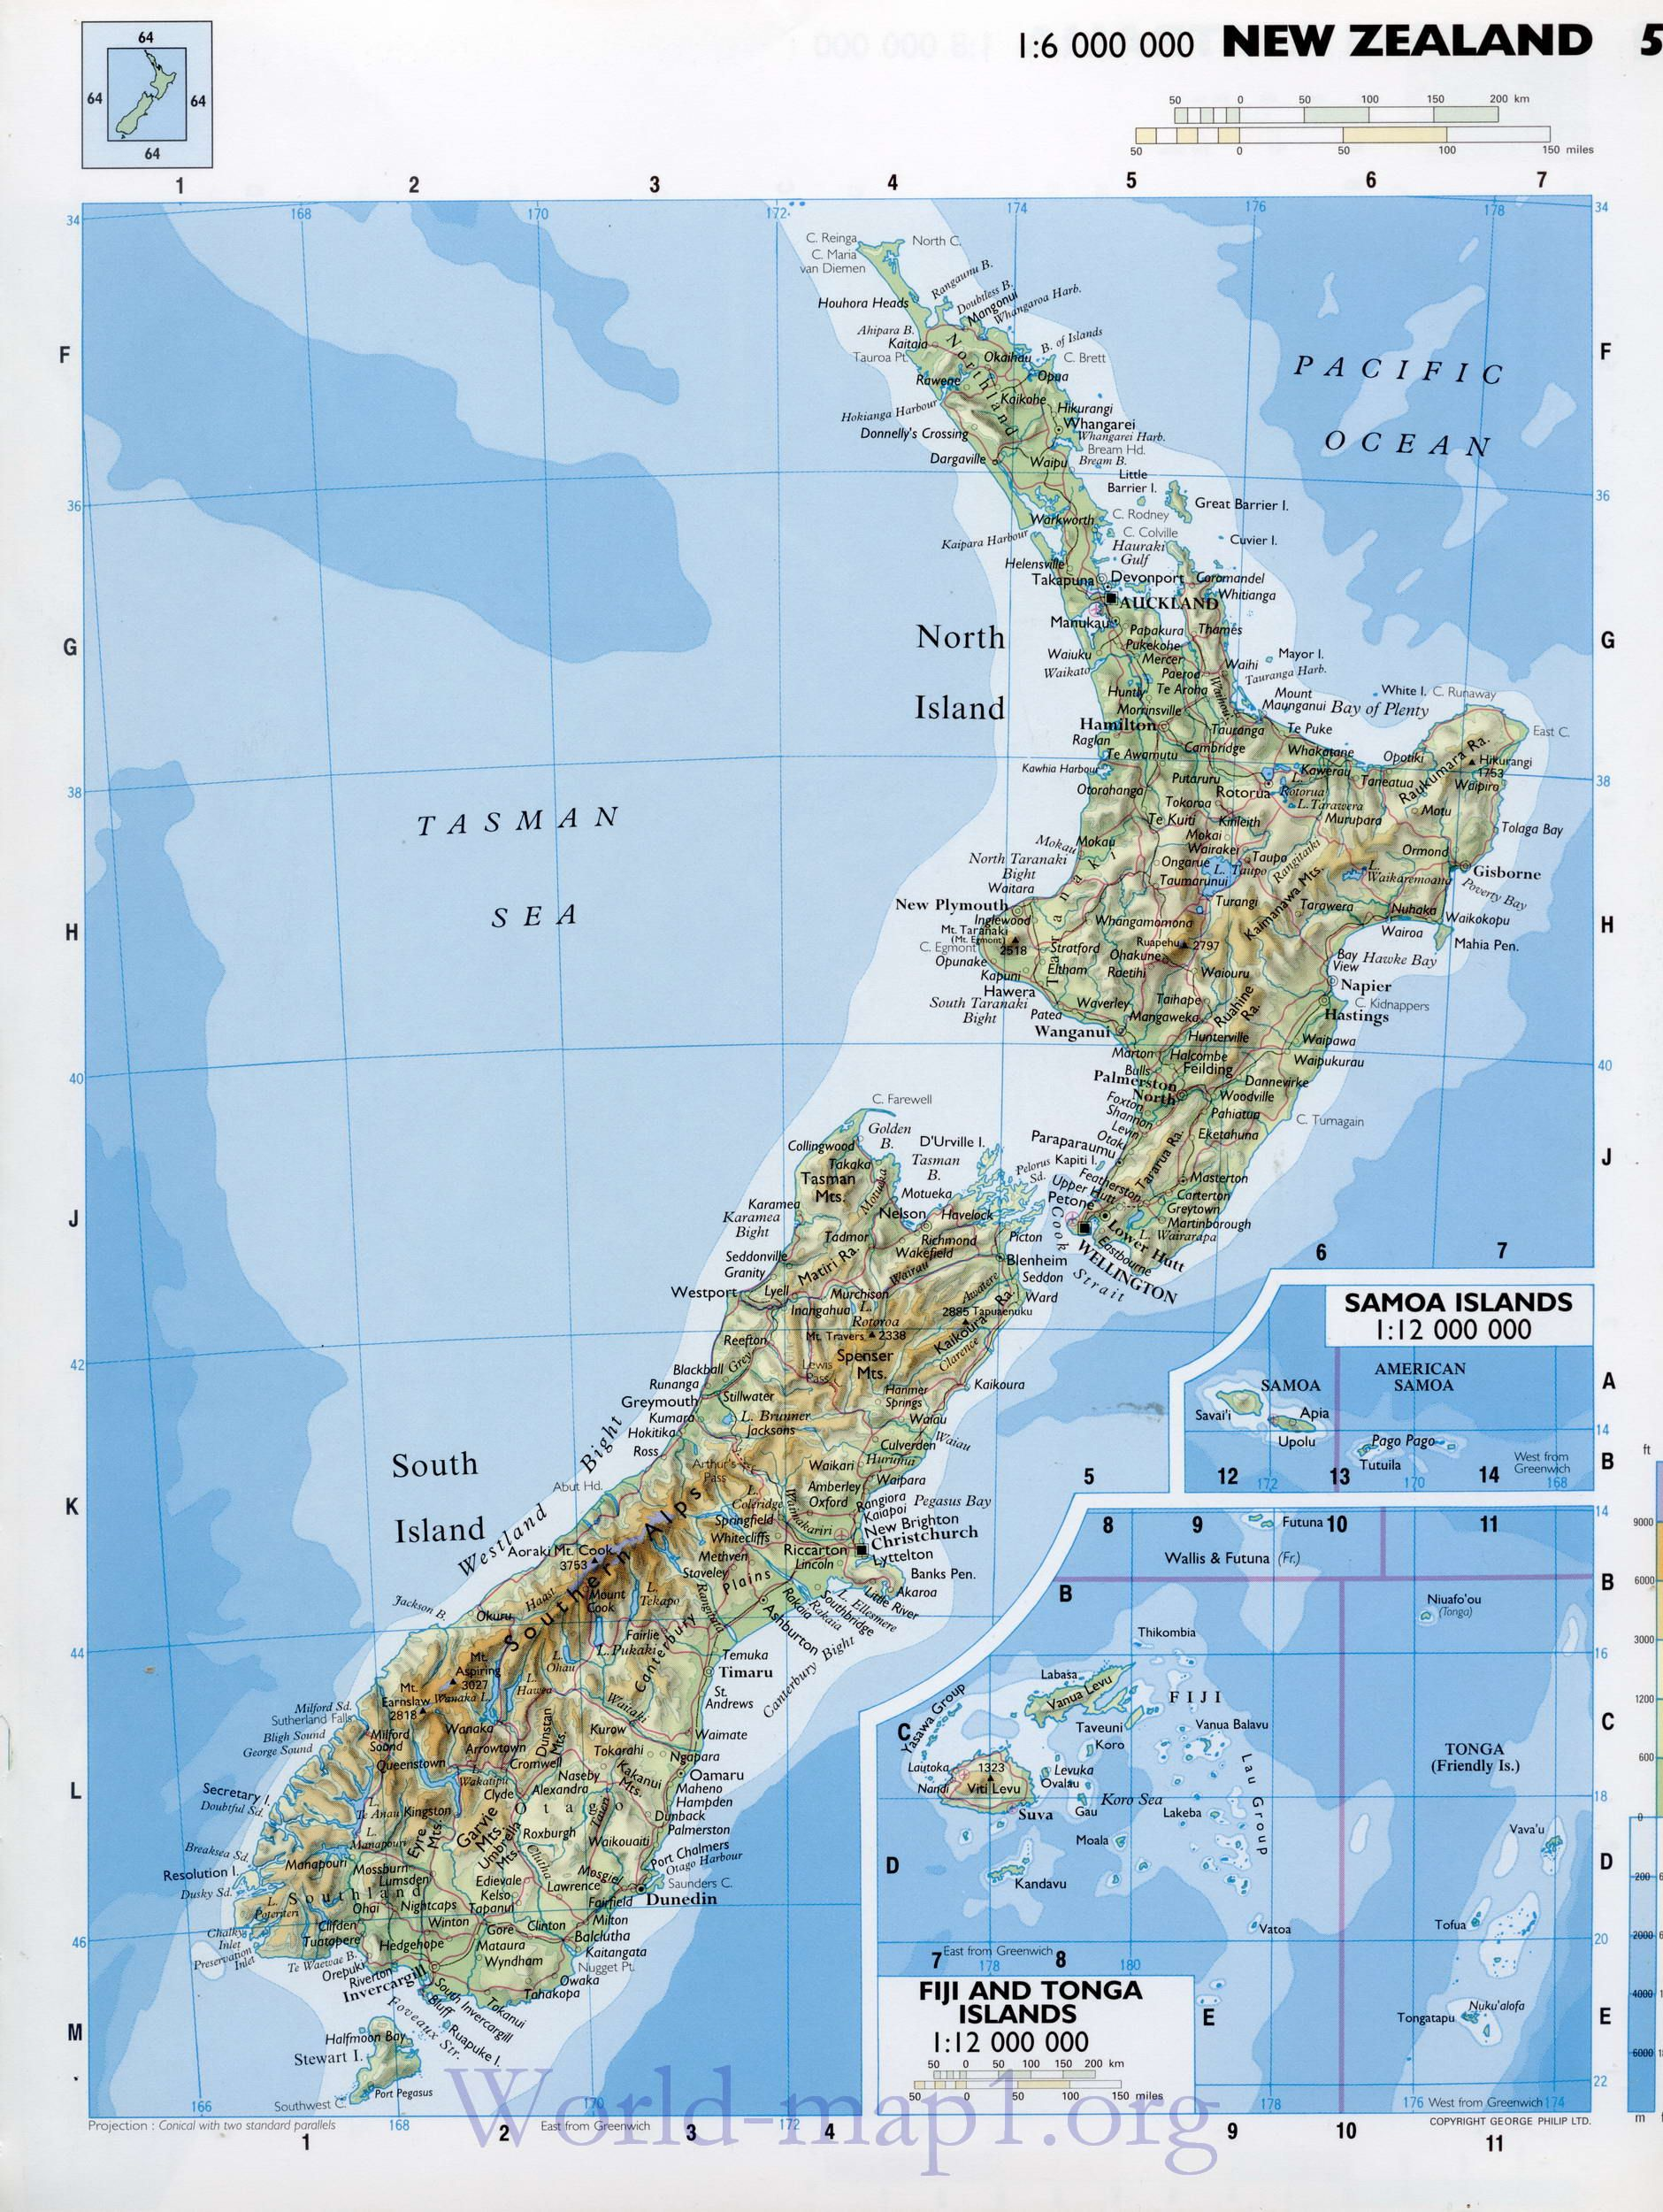 Detailed New Zealand Maps Map Of New Zealand Detailed - New zealand map